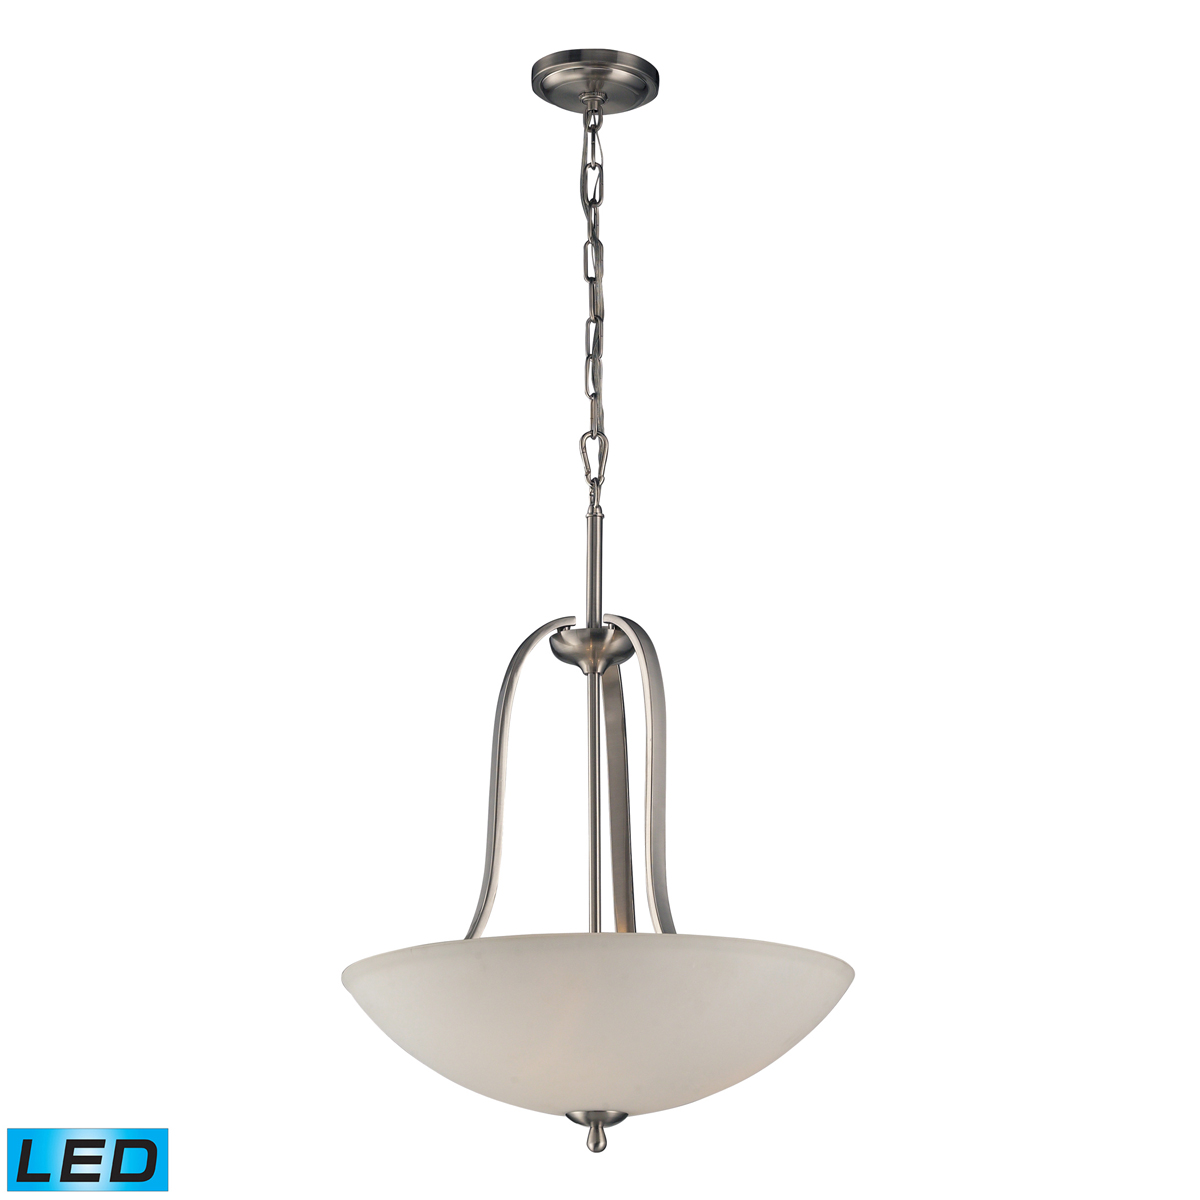 elk lighting 17142 3 led mayfield 3 light pendant in brushed nickel